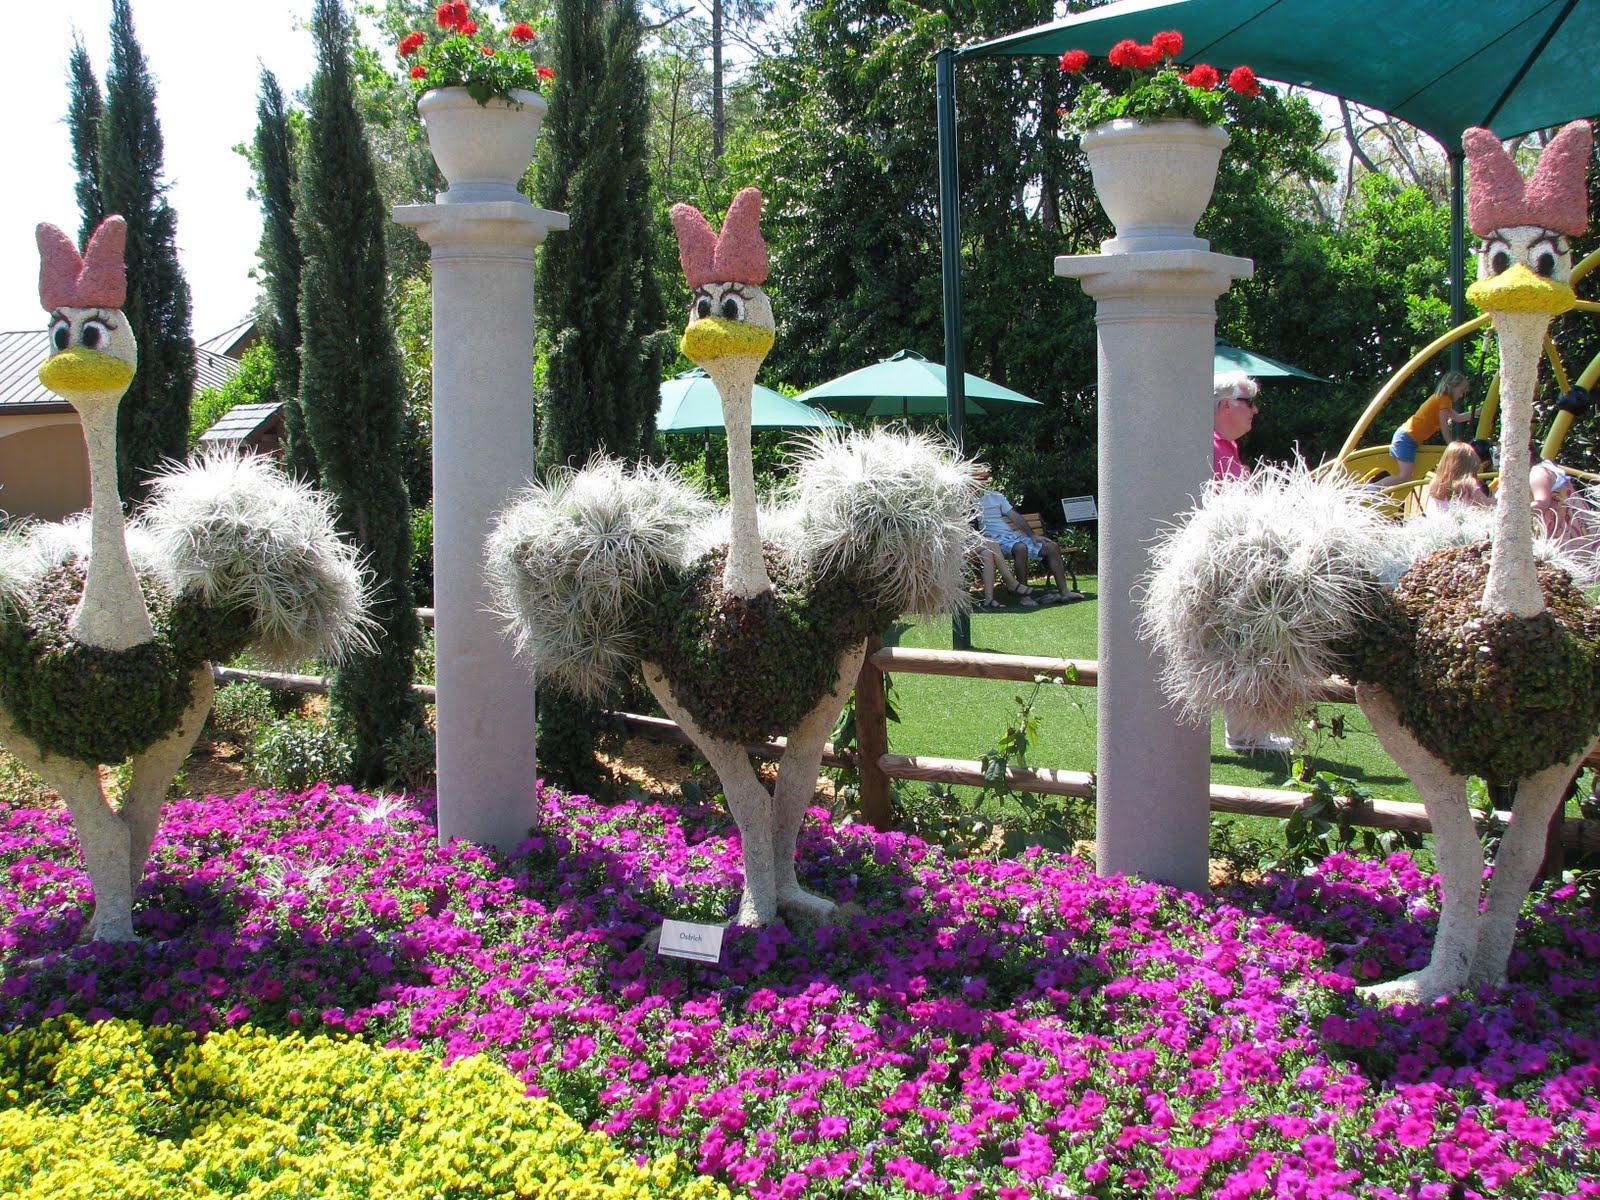 2010 Epcot Flower & Garden Festival: Topiary Pictures